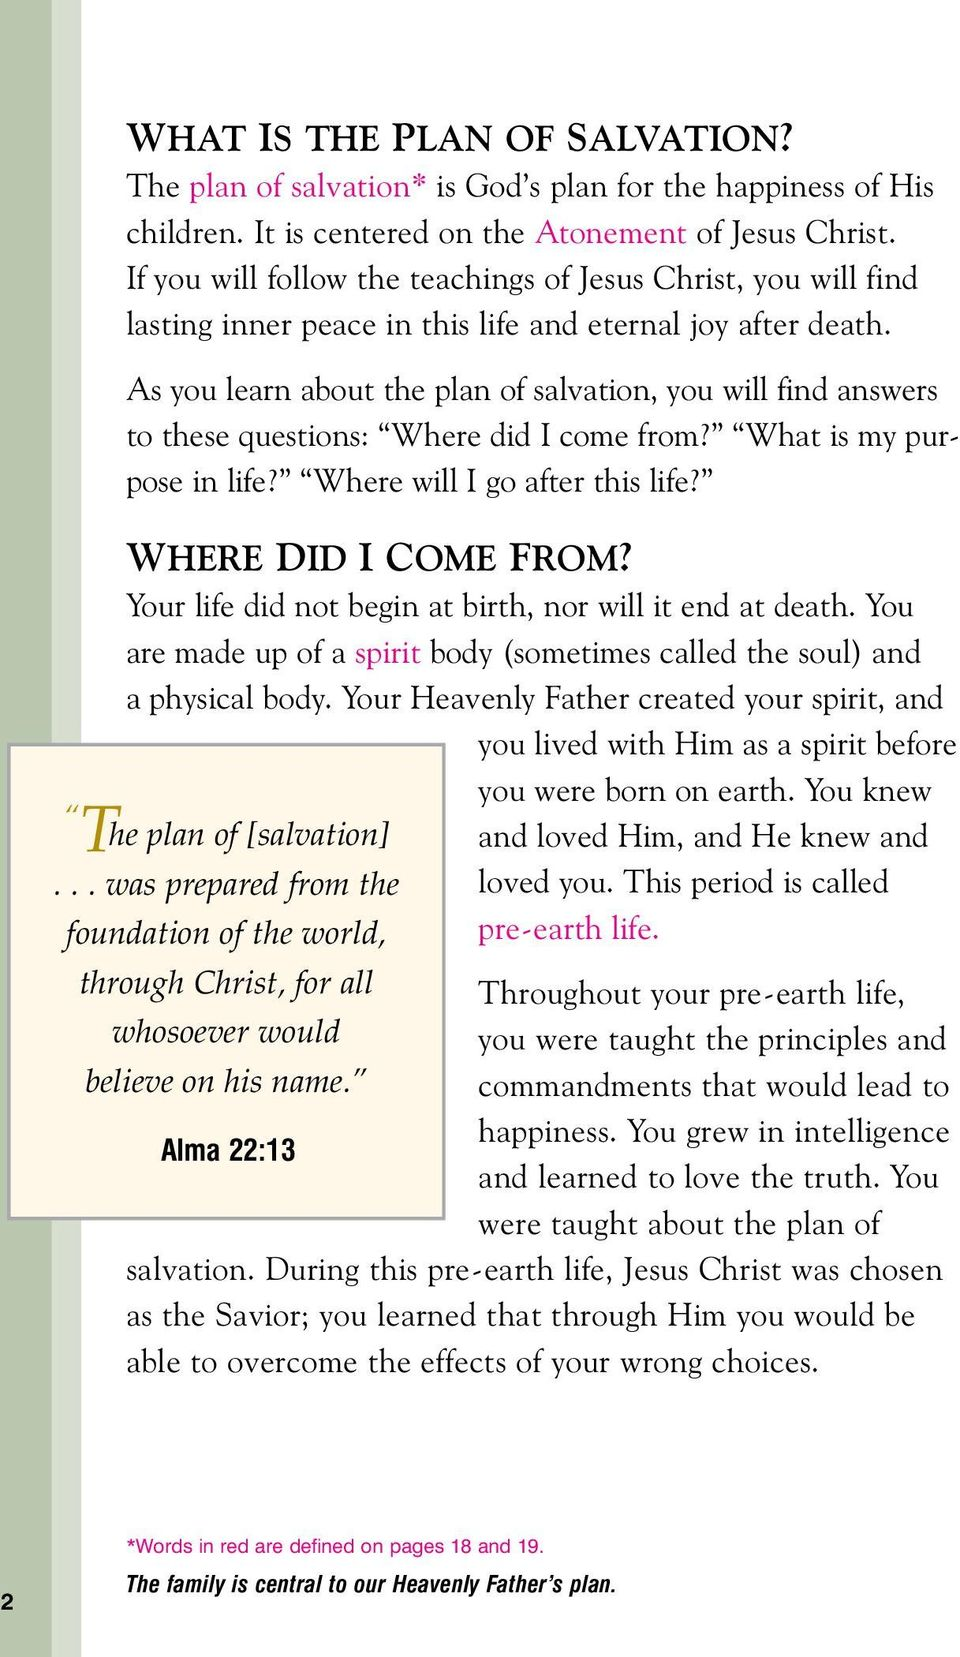 As you learn about the plan of salvation, you will find answers to these questions: Where did I come from? What is my purpose in life? Where will I go after this life? WHERE DID I COME FROM?